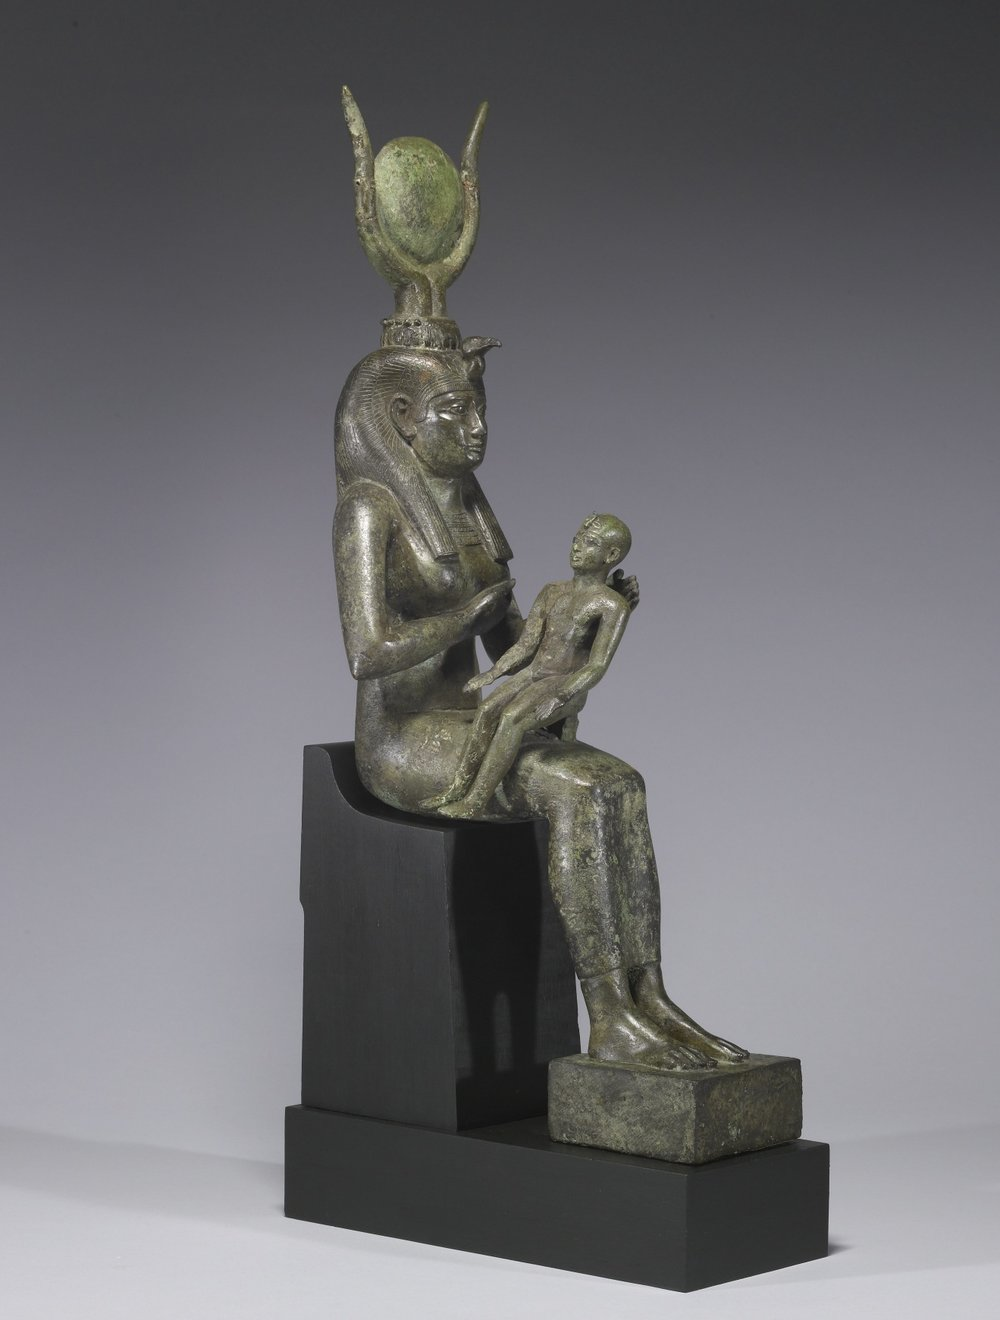 Seth argues that Horus cannot be king because his breath stinks — an allusion to Horus breastfeeding from his mother, Isis, and a dig at his youth